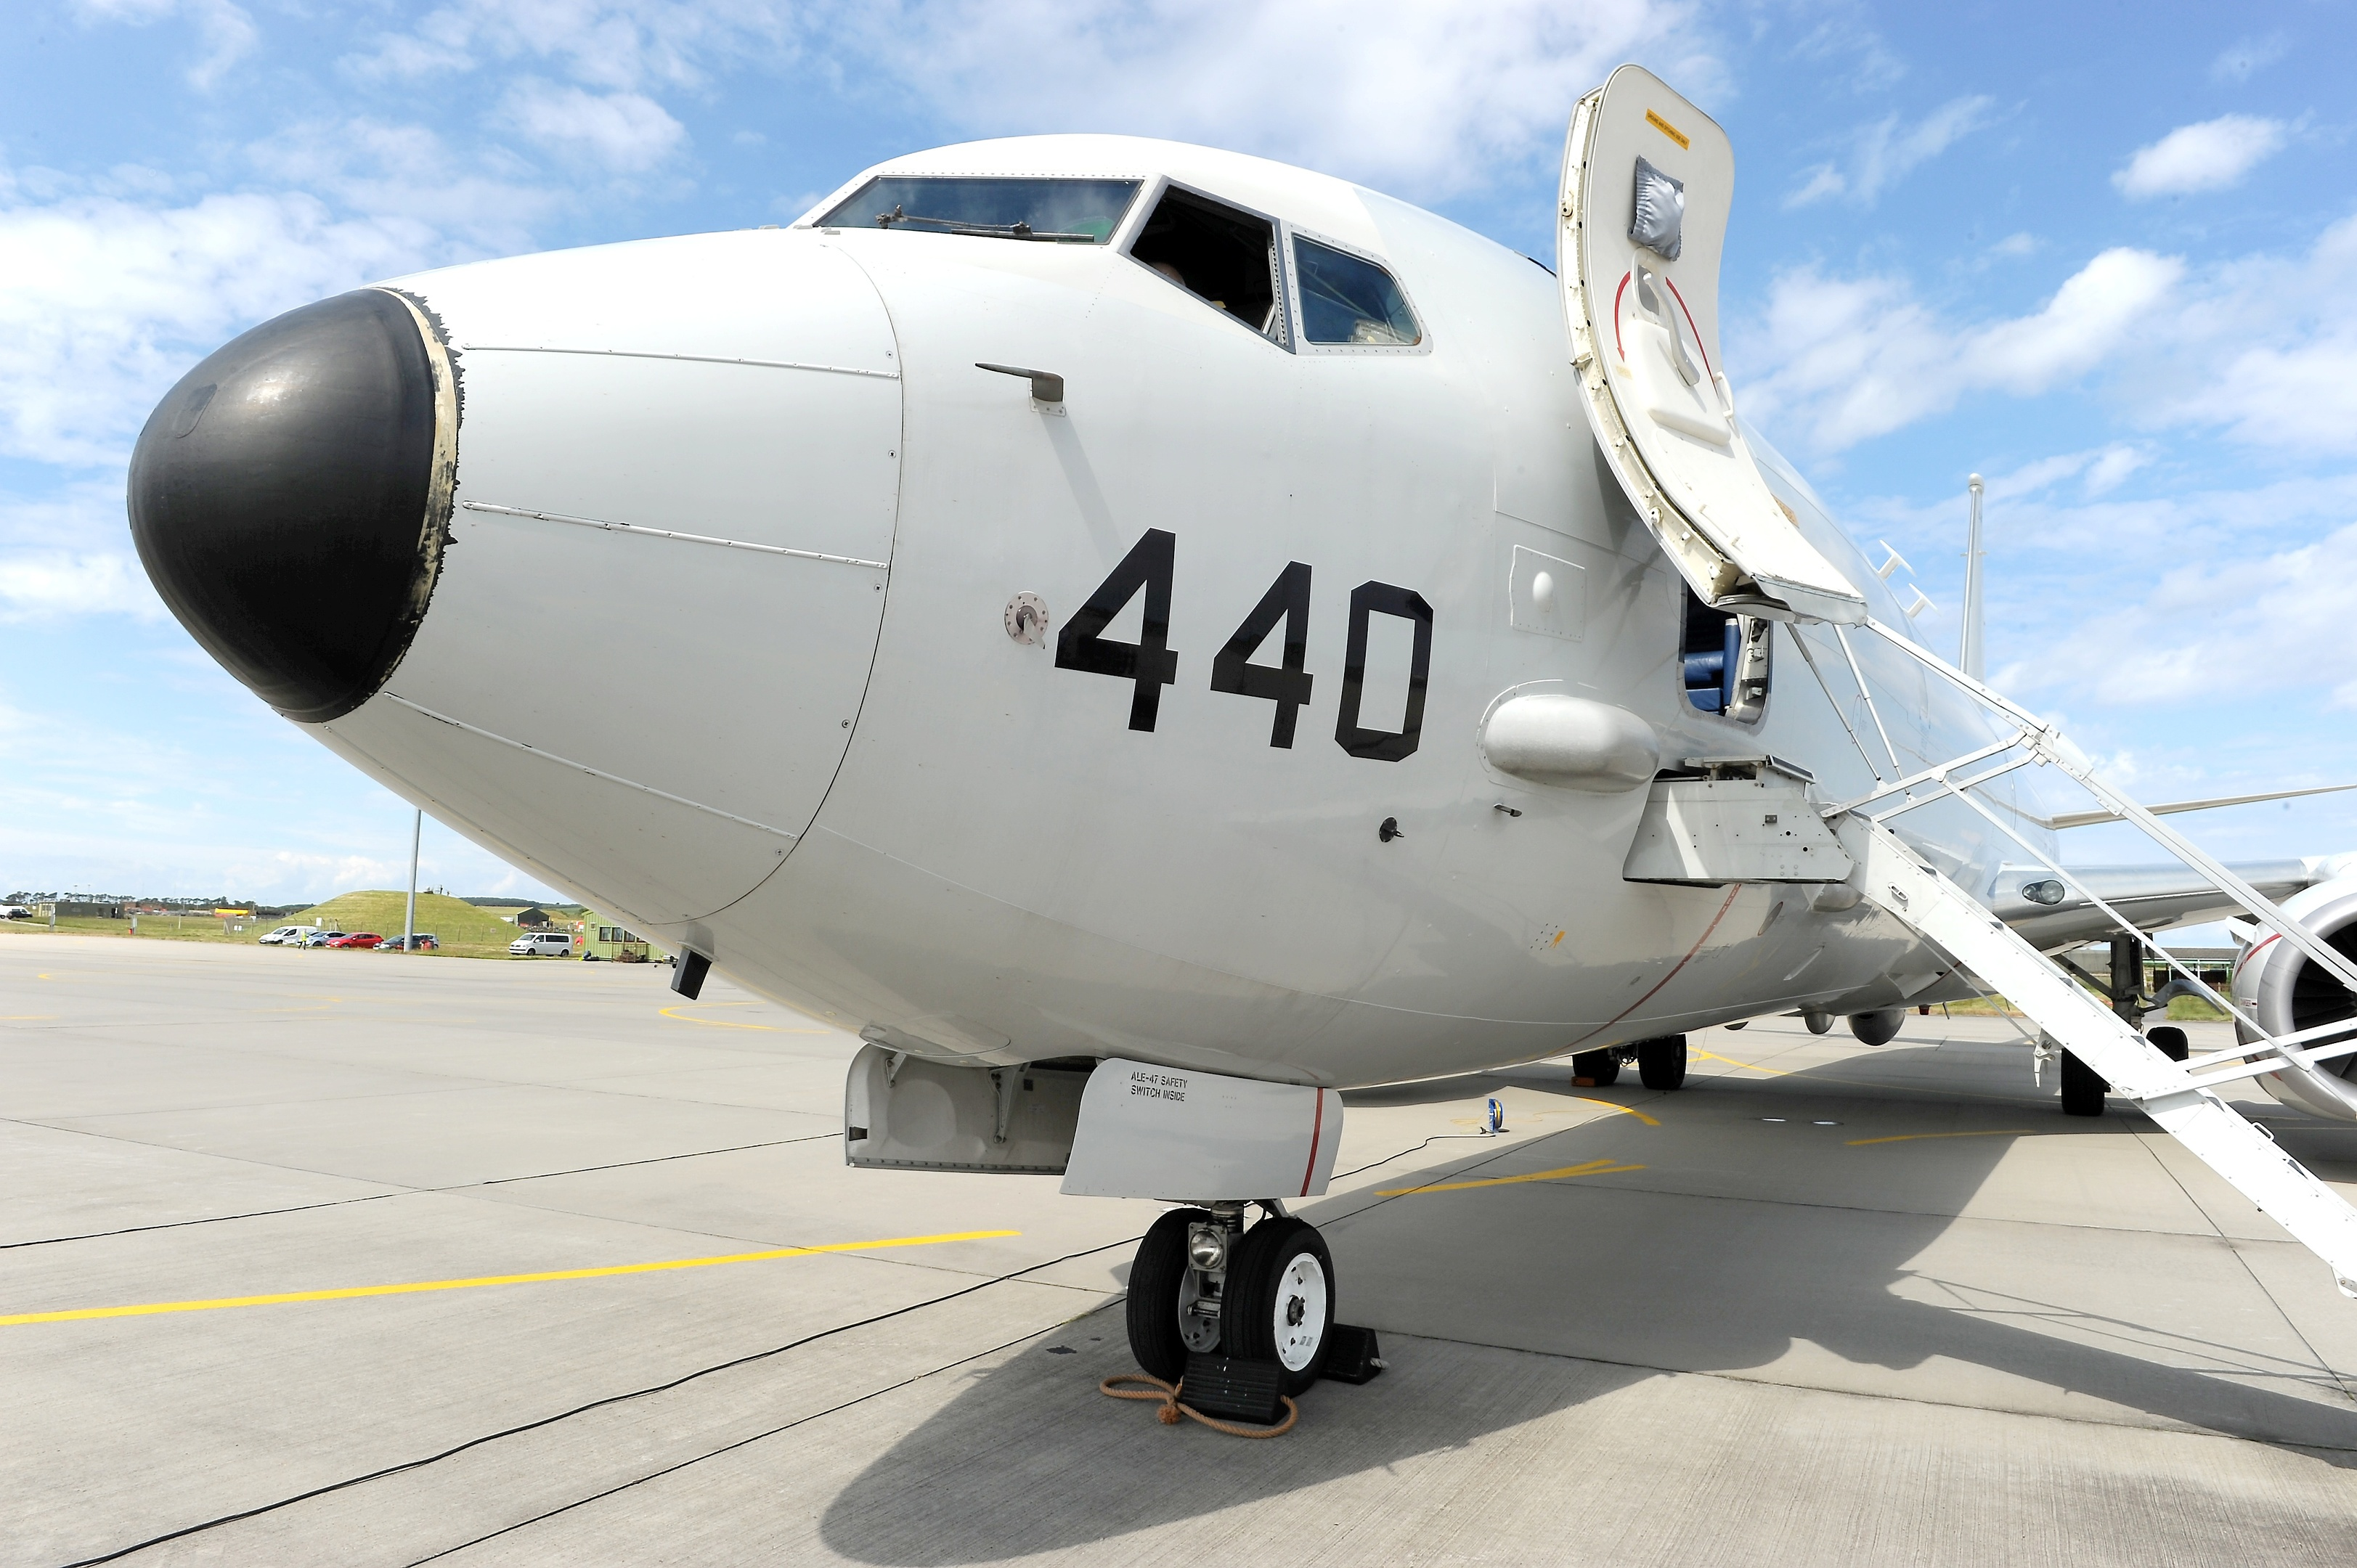 Nine RAF Poseidon P-8 aircraft will be based at Lossiemouth